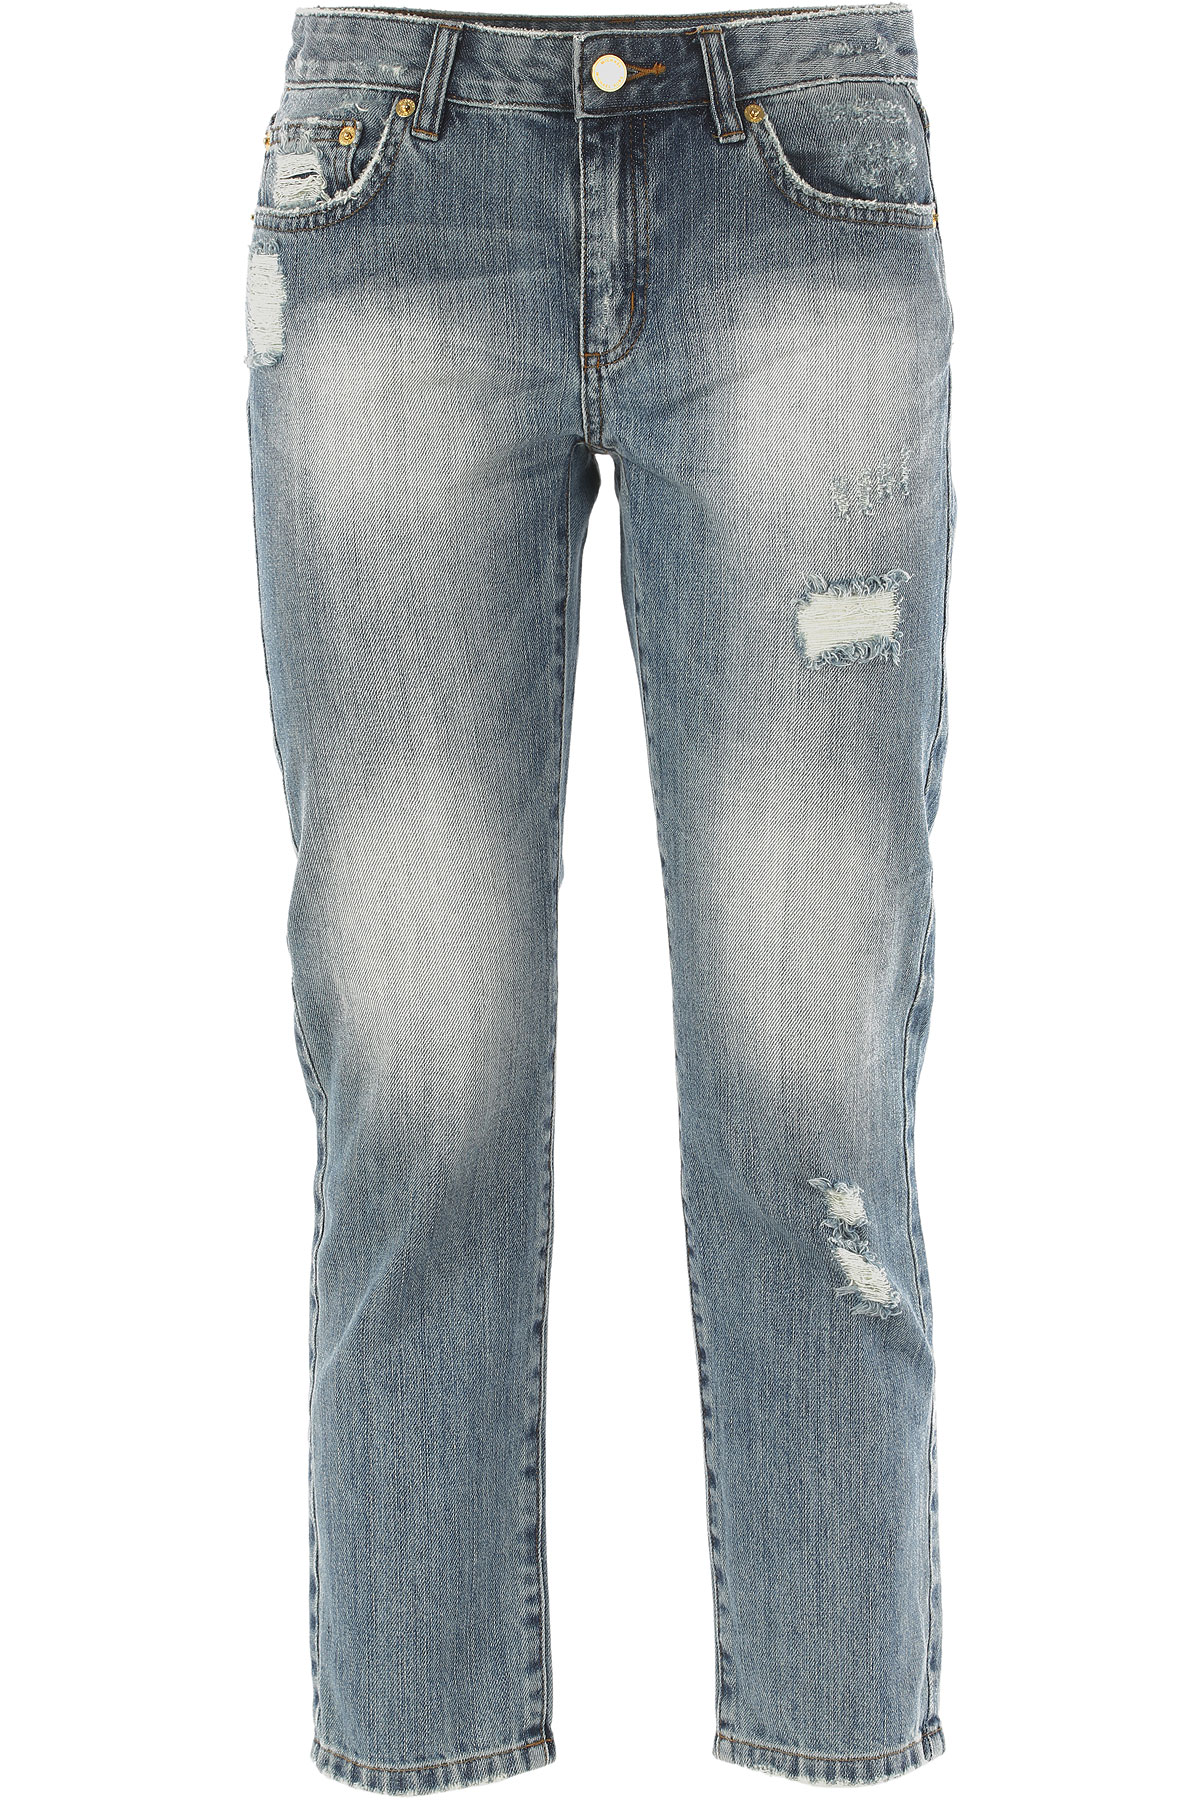 Michael Kors Jeans On Sale in Outlet, Denim, Cotton, 2017, 26 30 USA-389112